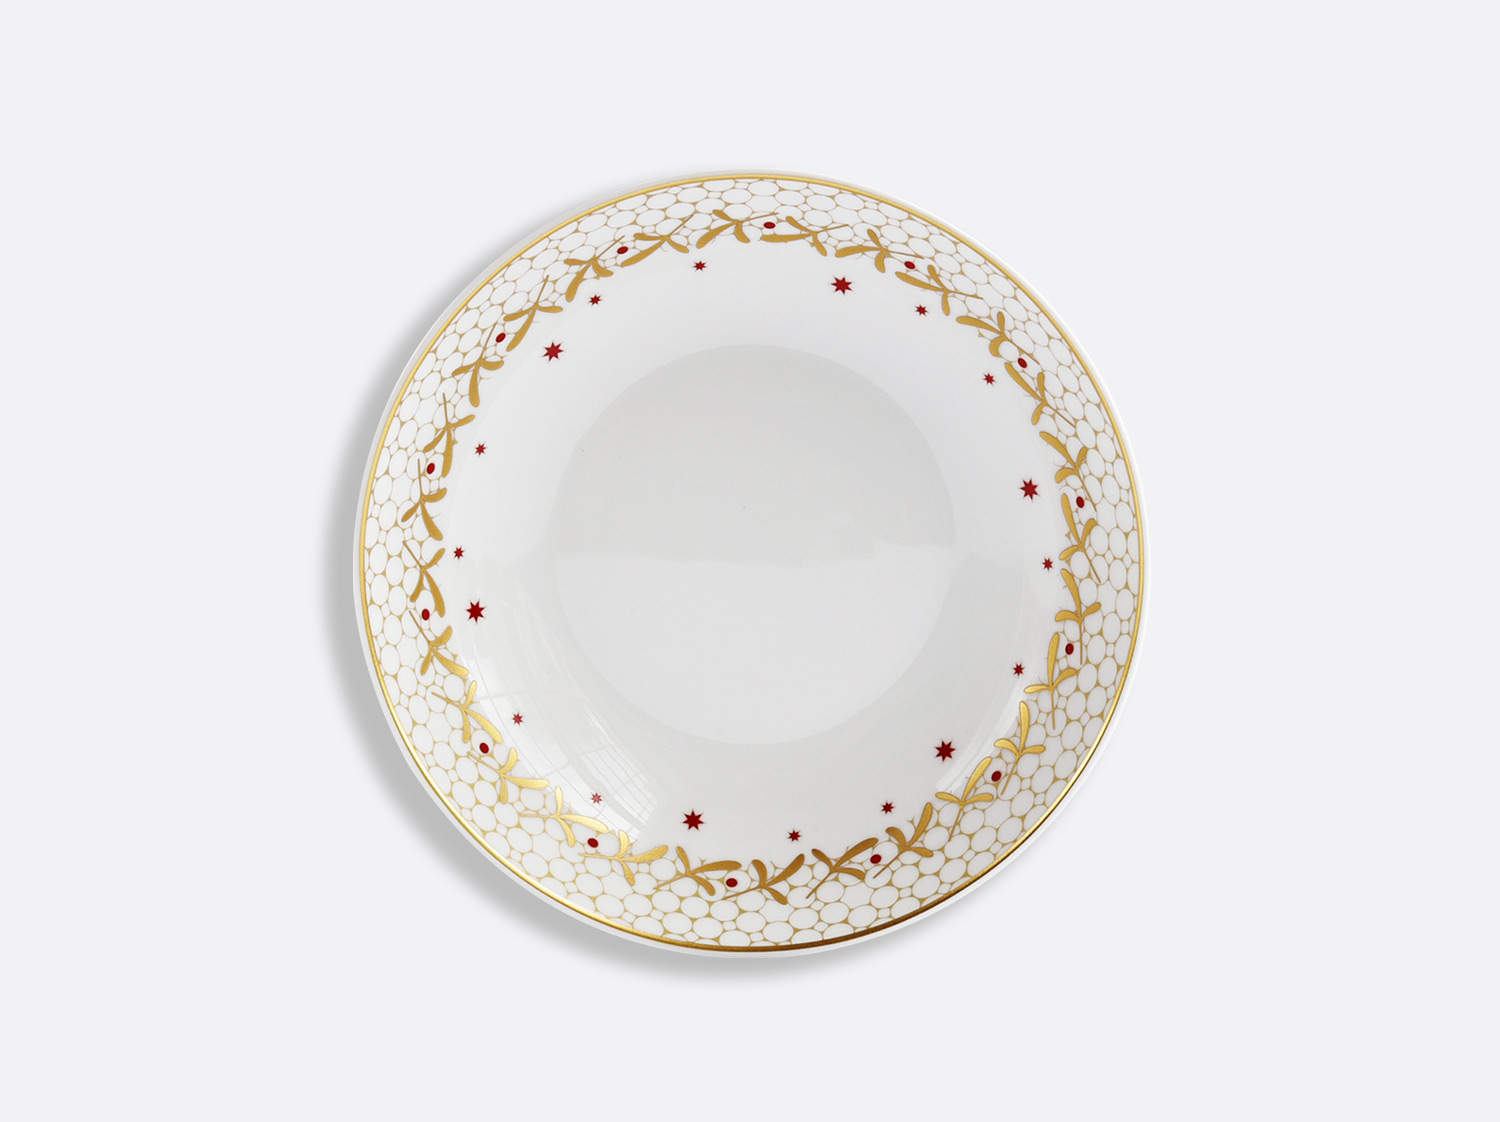 "China Soup plate 7.5"" of the collection Noël 